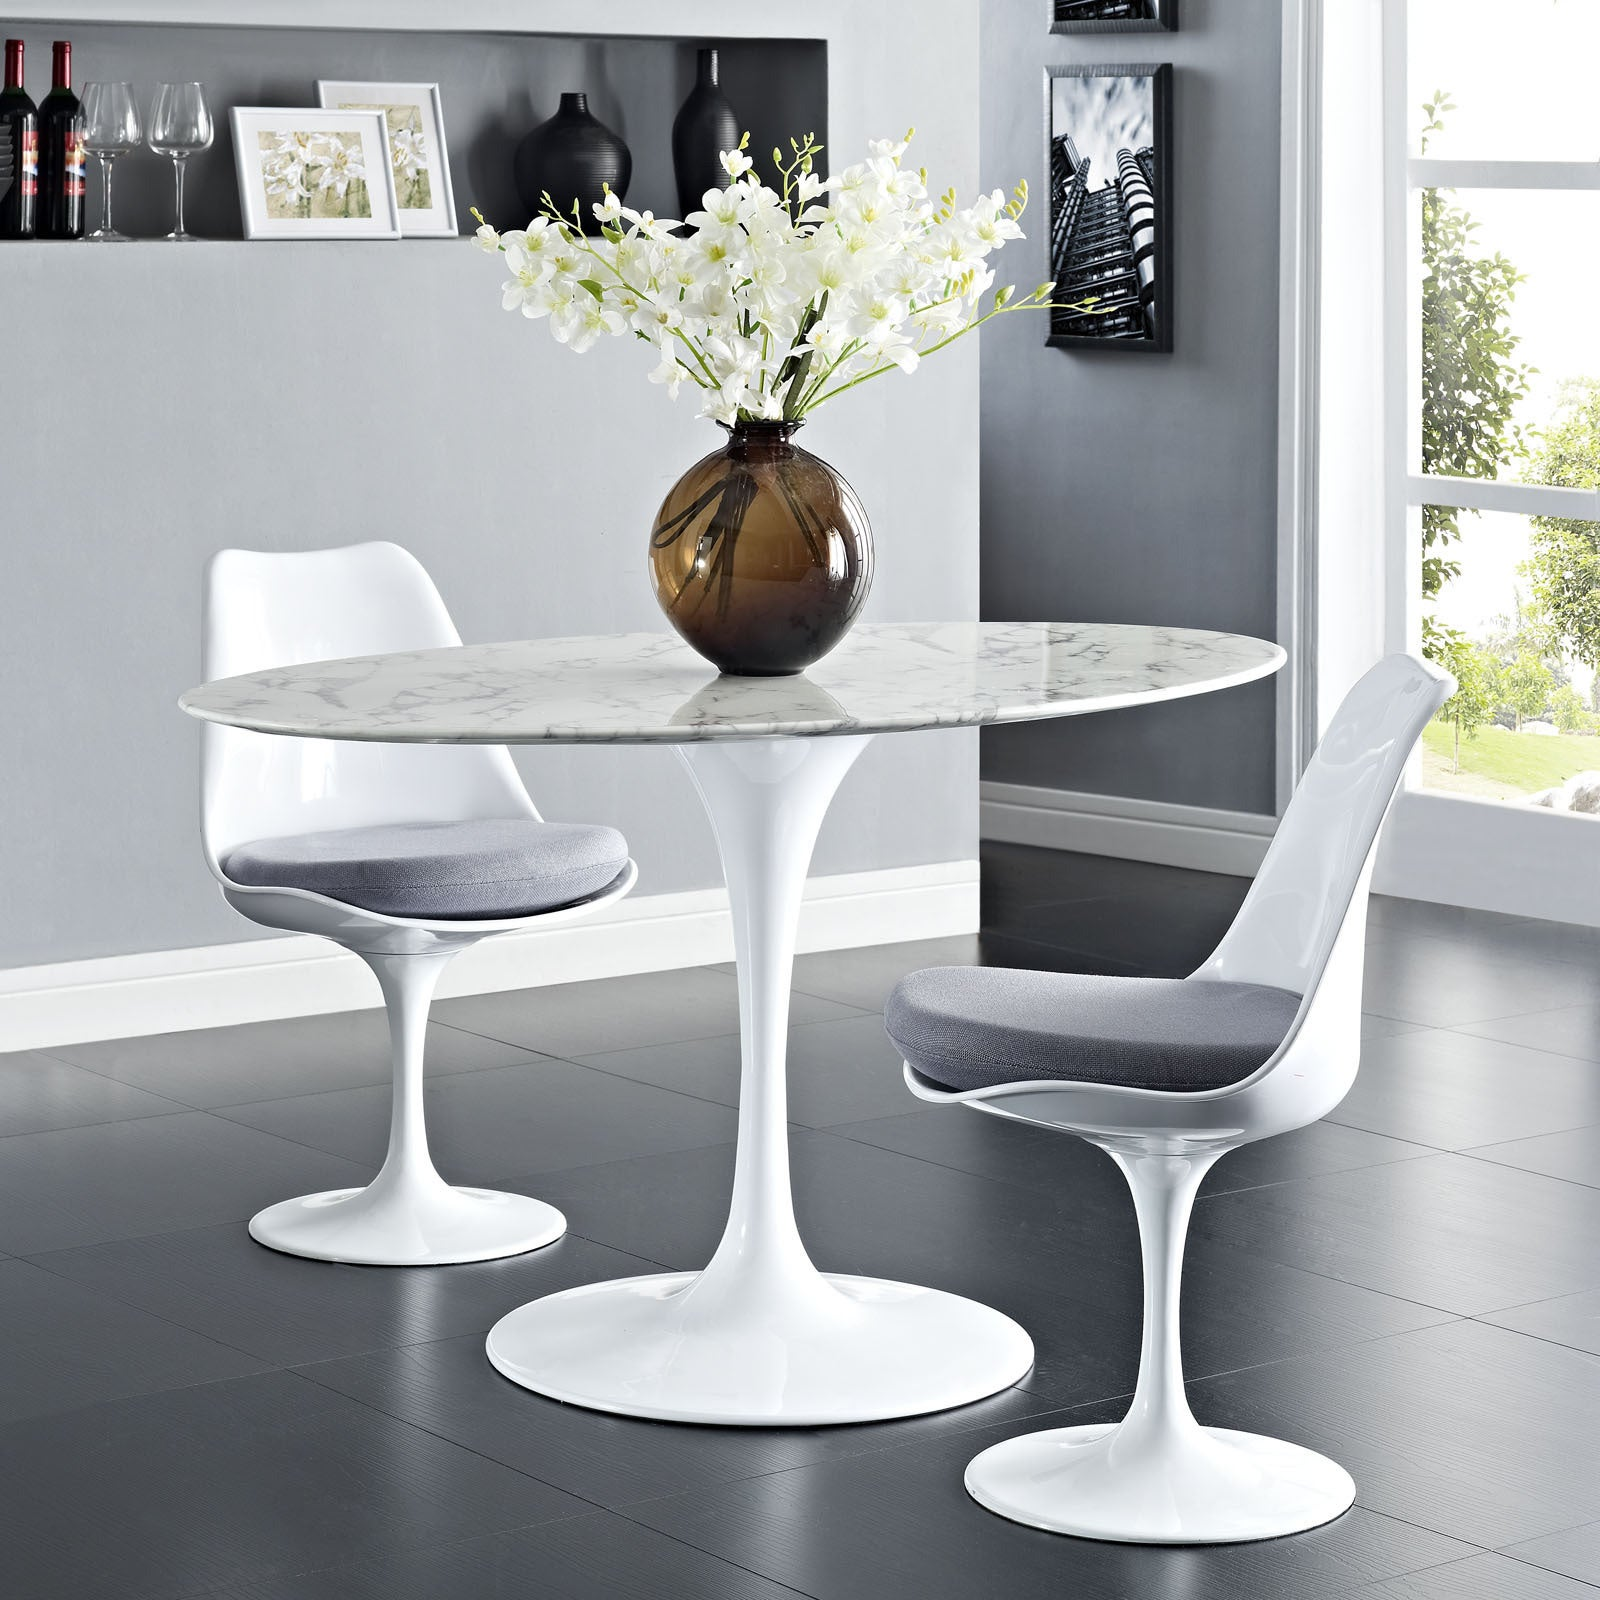 Shop Lippa Marble 54 White Oval Shaped Dining Table On Sale